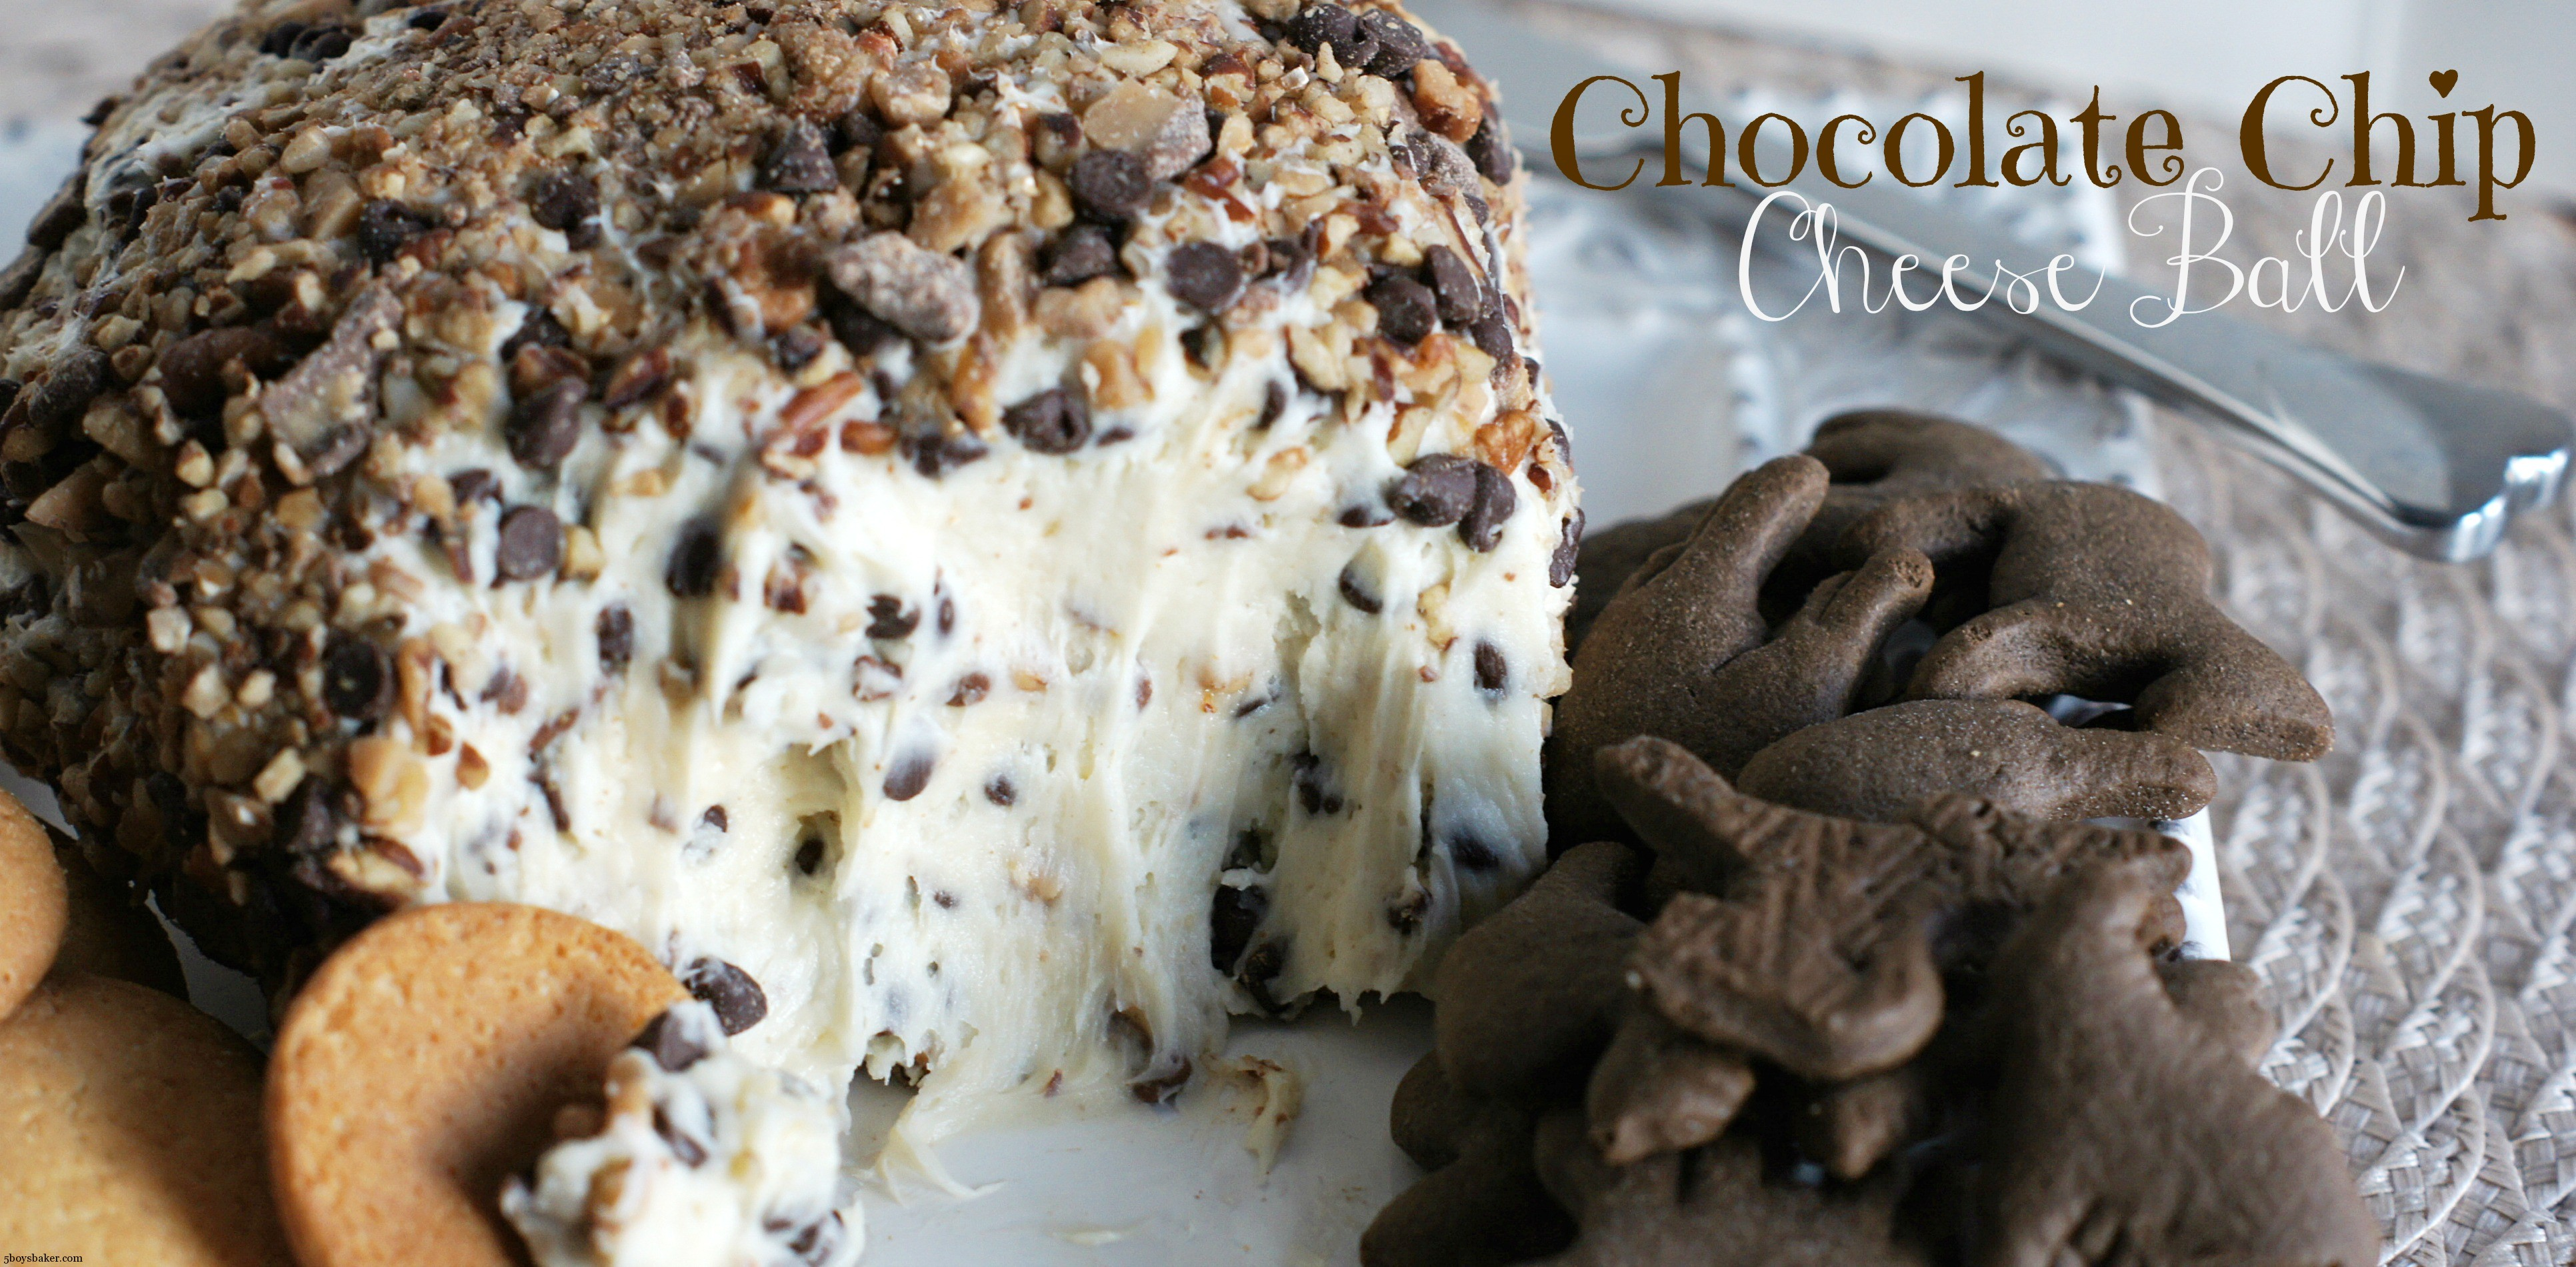 Chocolate Chip Cheese Ball - 5 BoysBaker